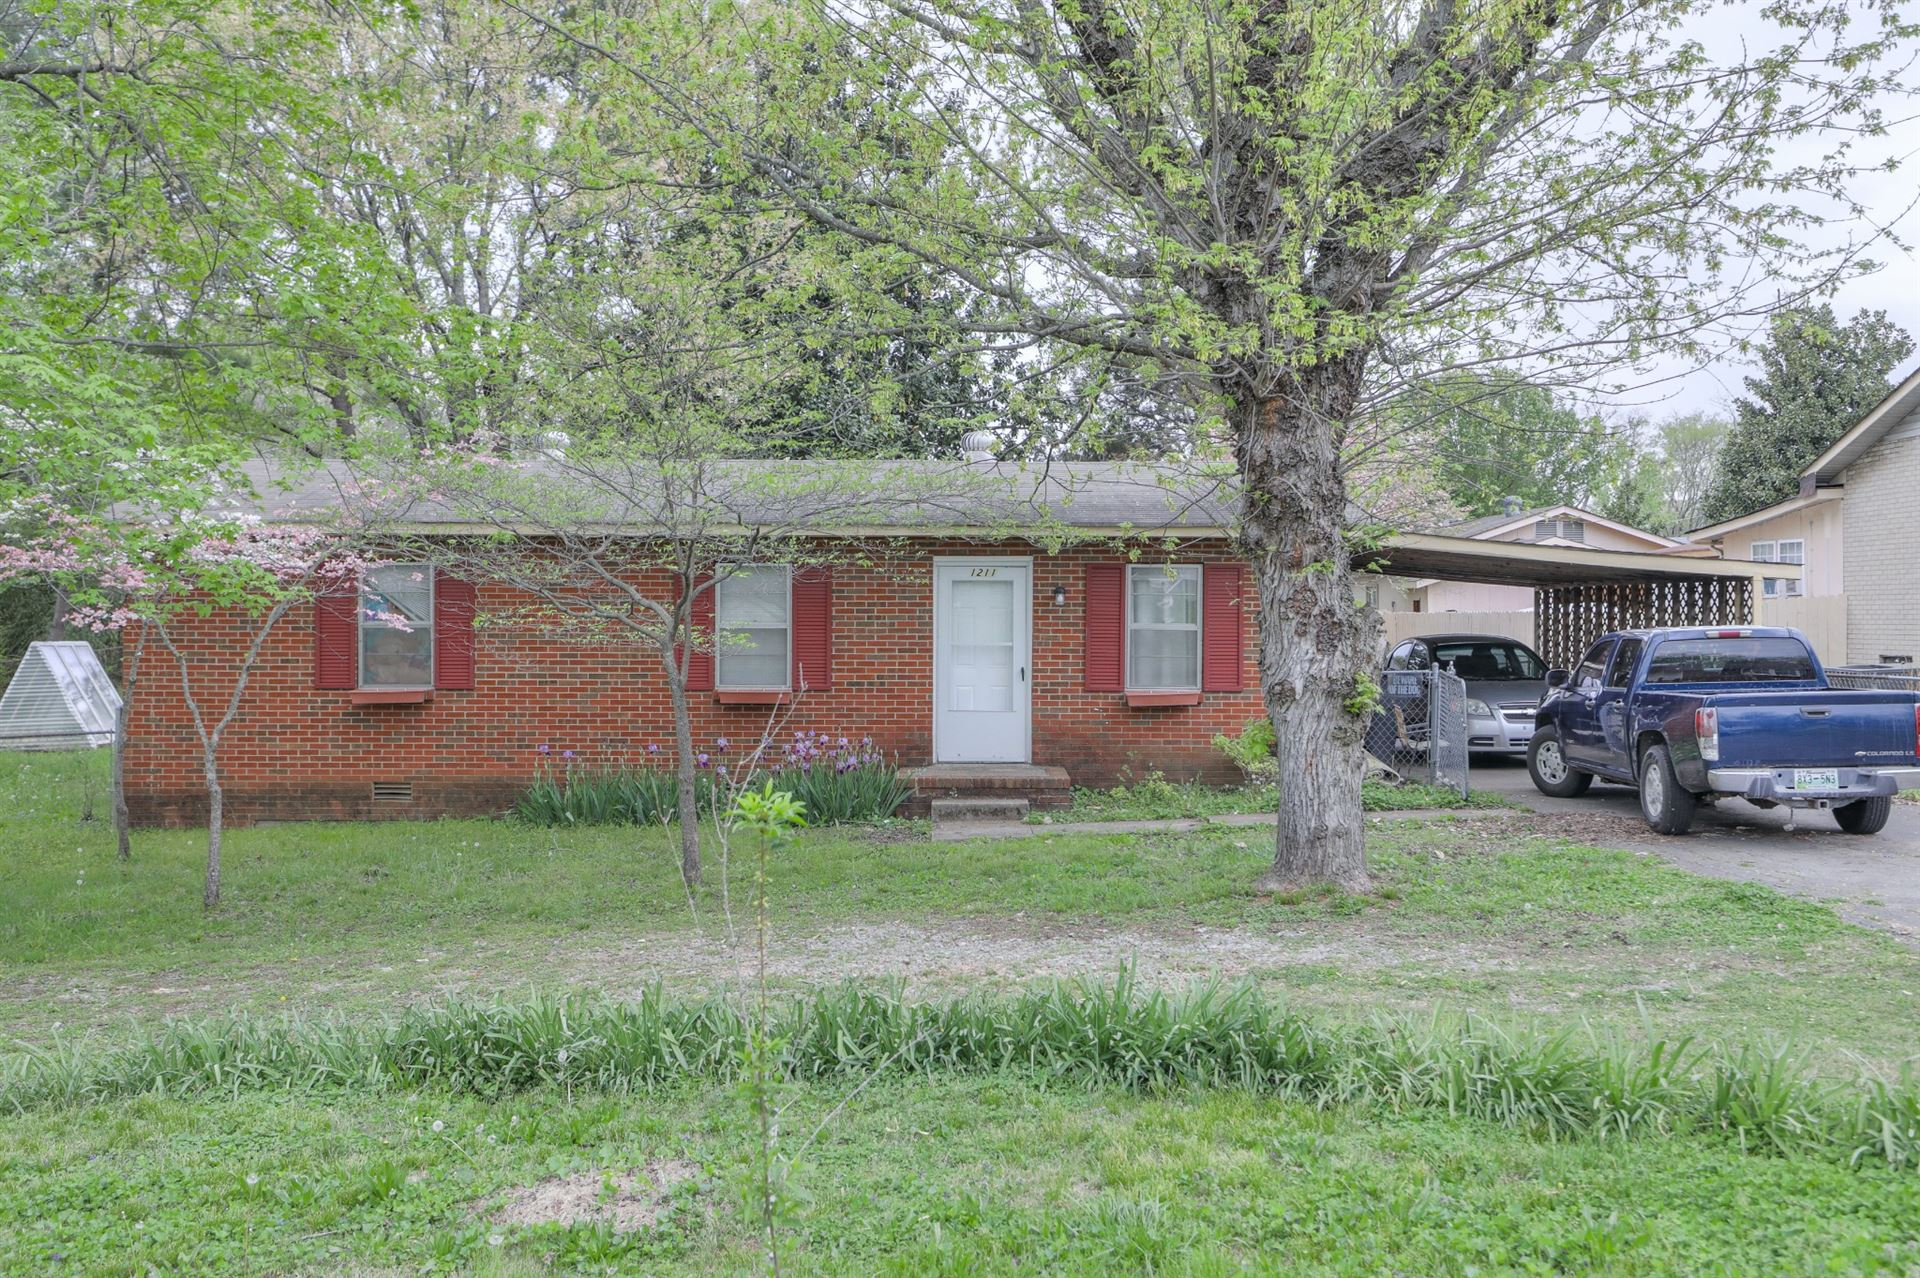 Photo of 1211 Warren St, Murfreesboro, TN 37129 (MLS # 2246811)